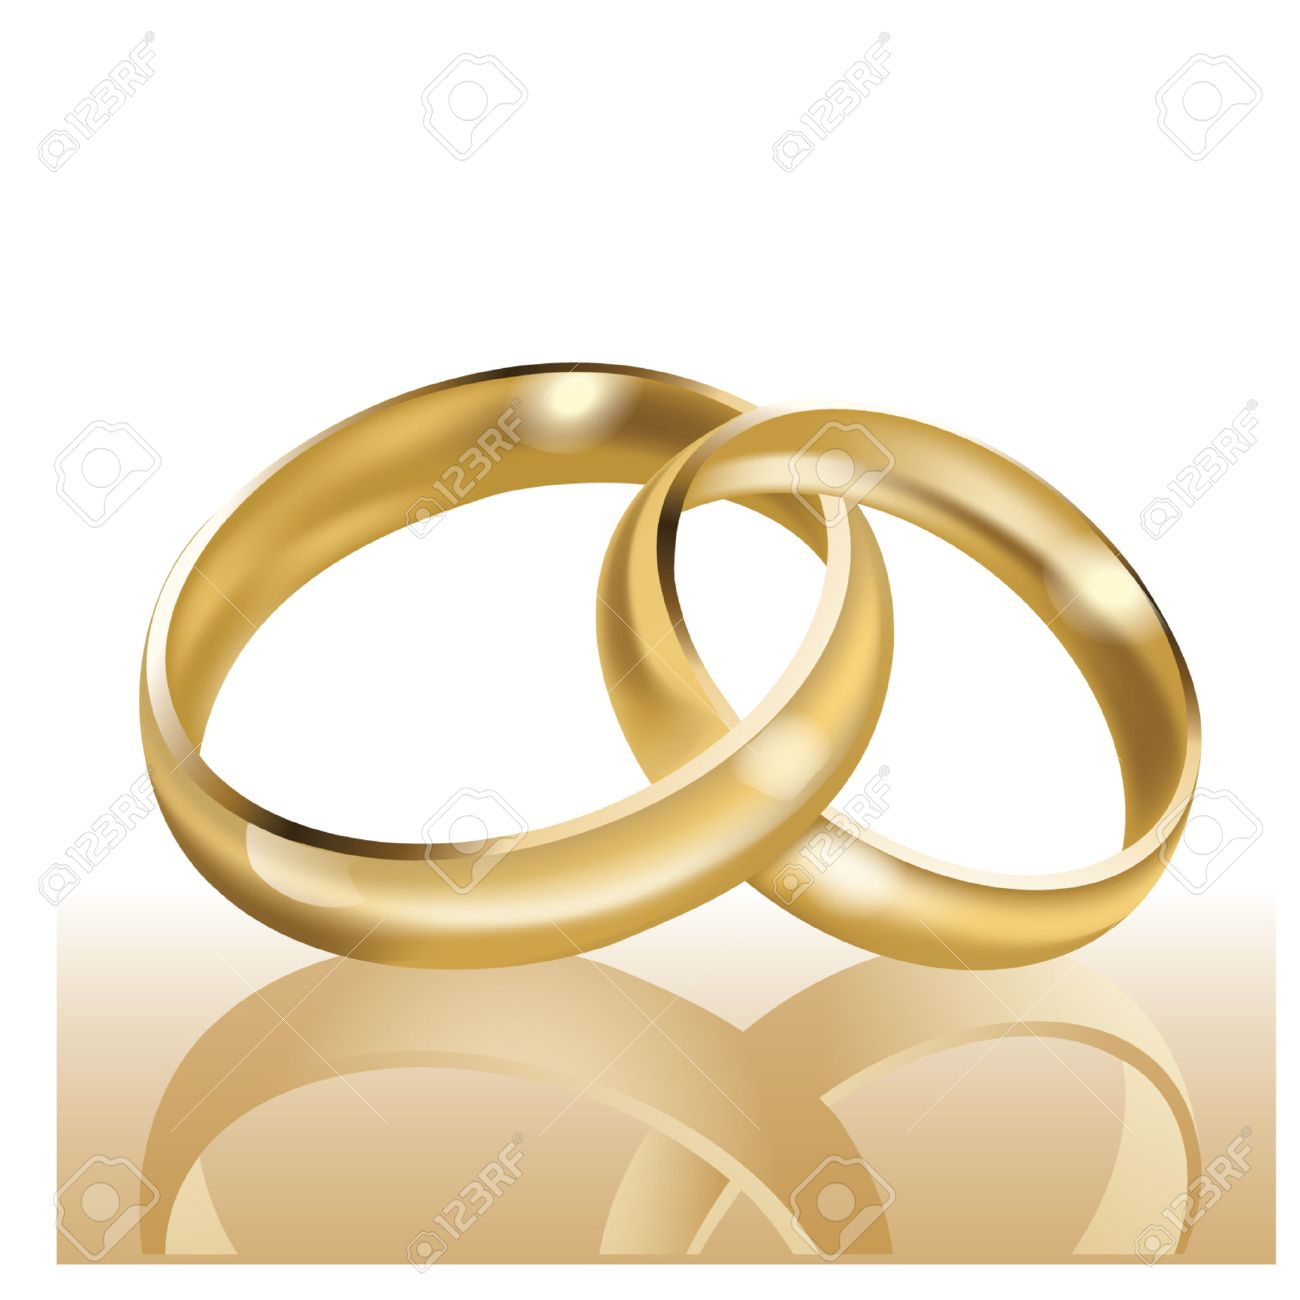 Wedding Rings Symbol Of Marriage And Eternal Love Royalty Free